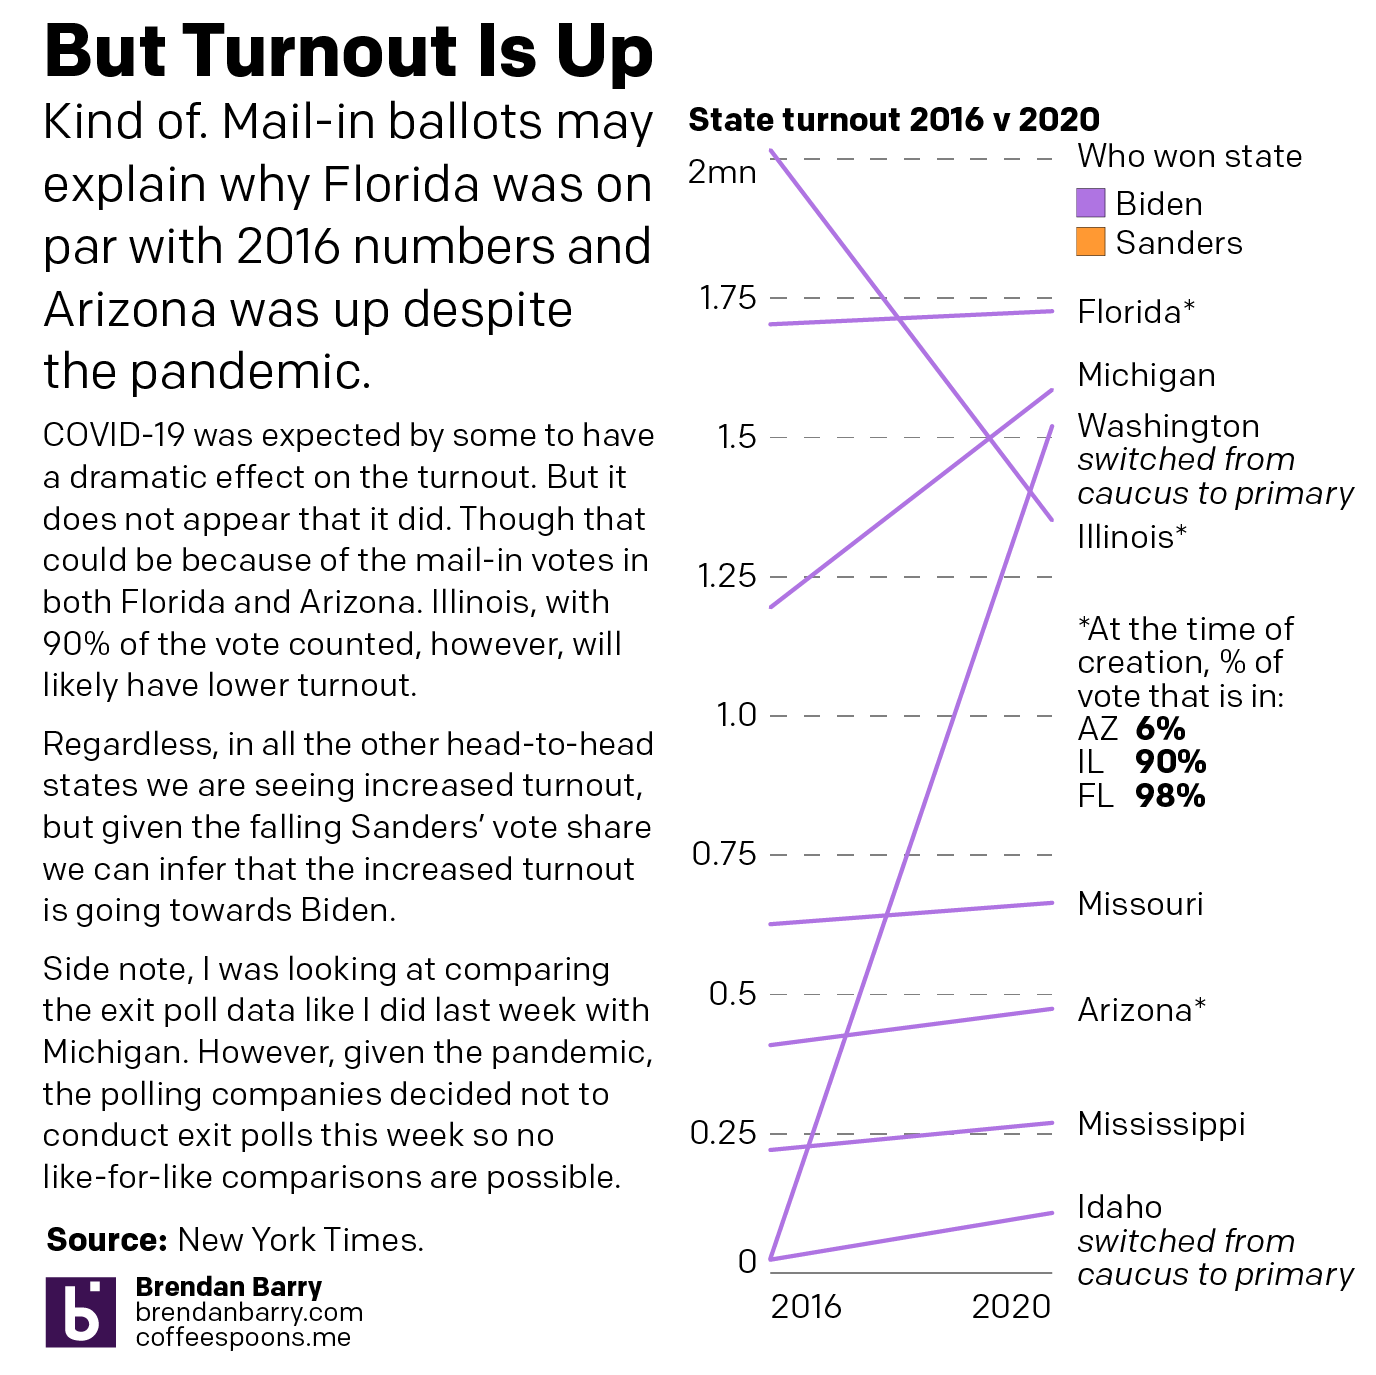 Turnout is generally up in all the head-to-head states.